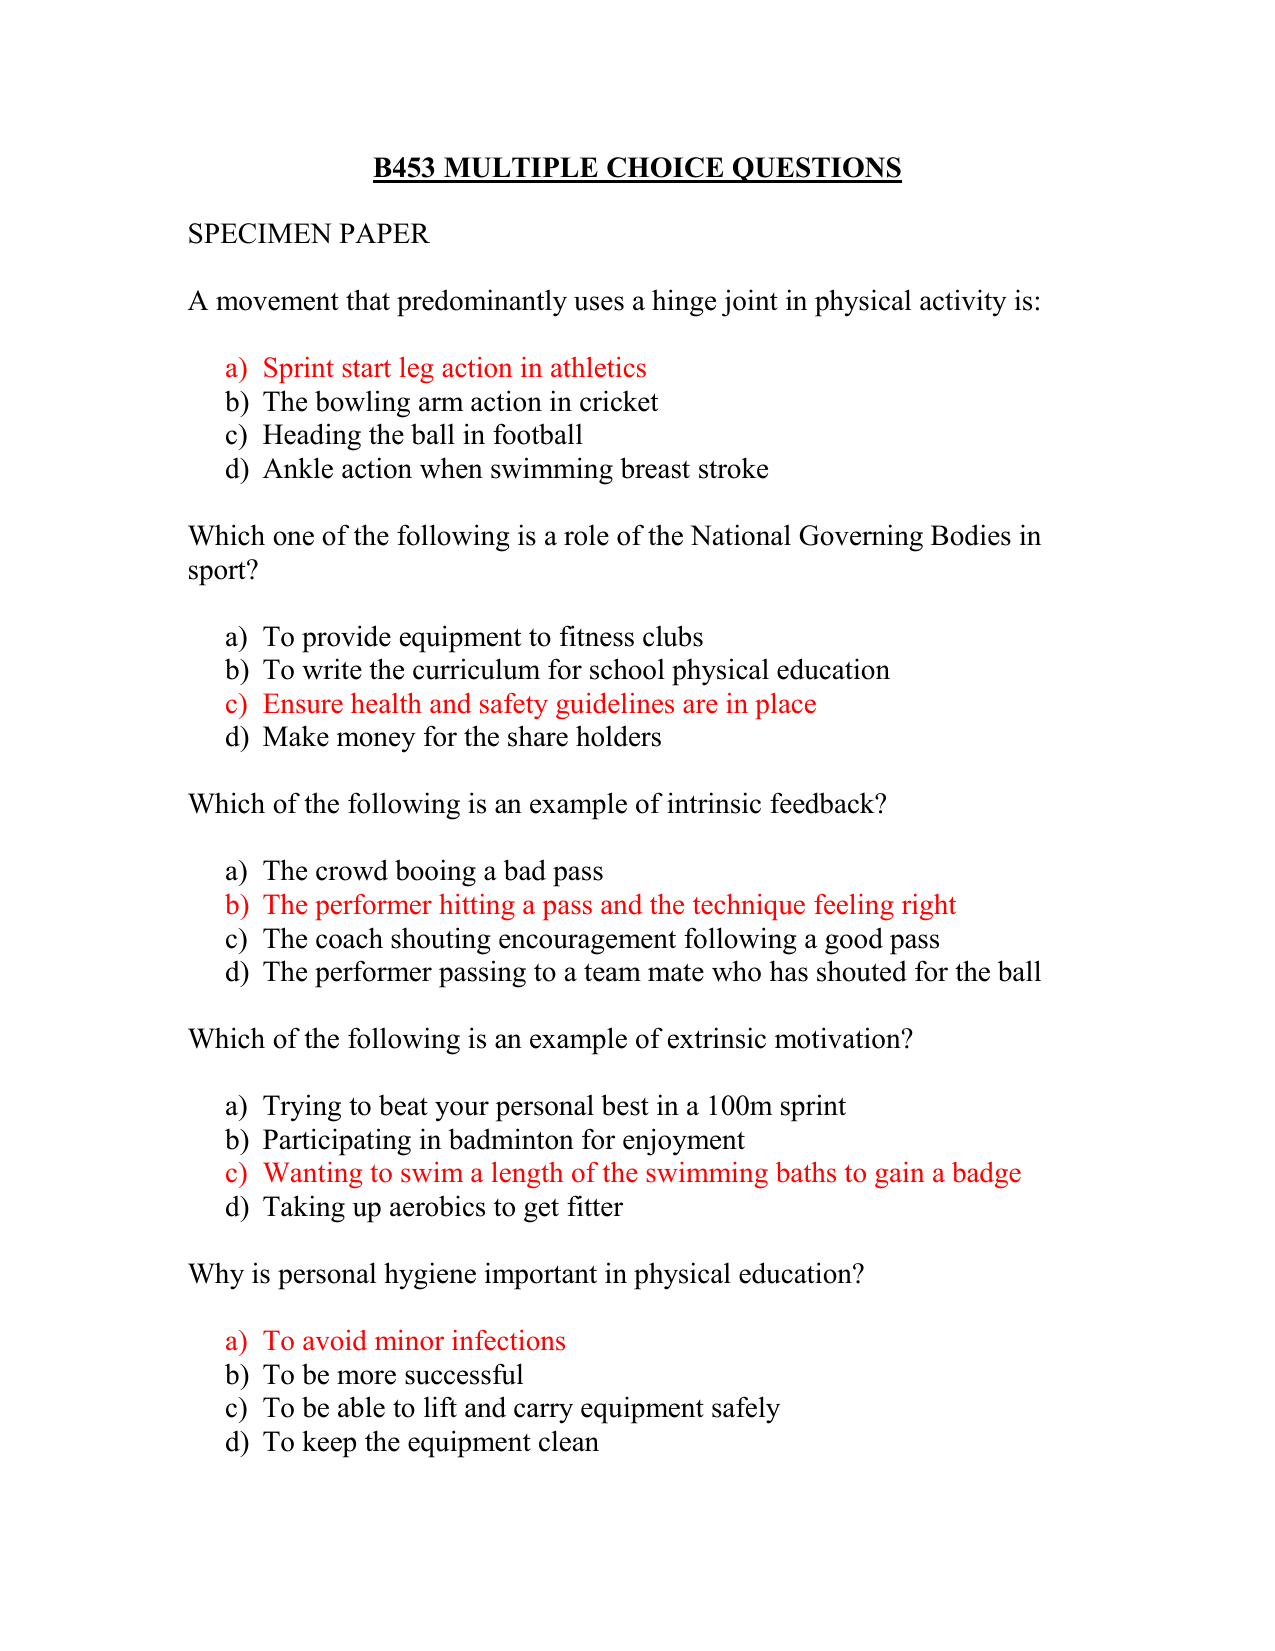 Multiple choice answers for B453